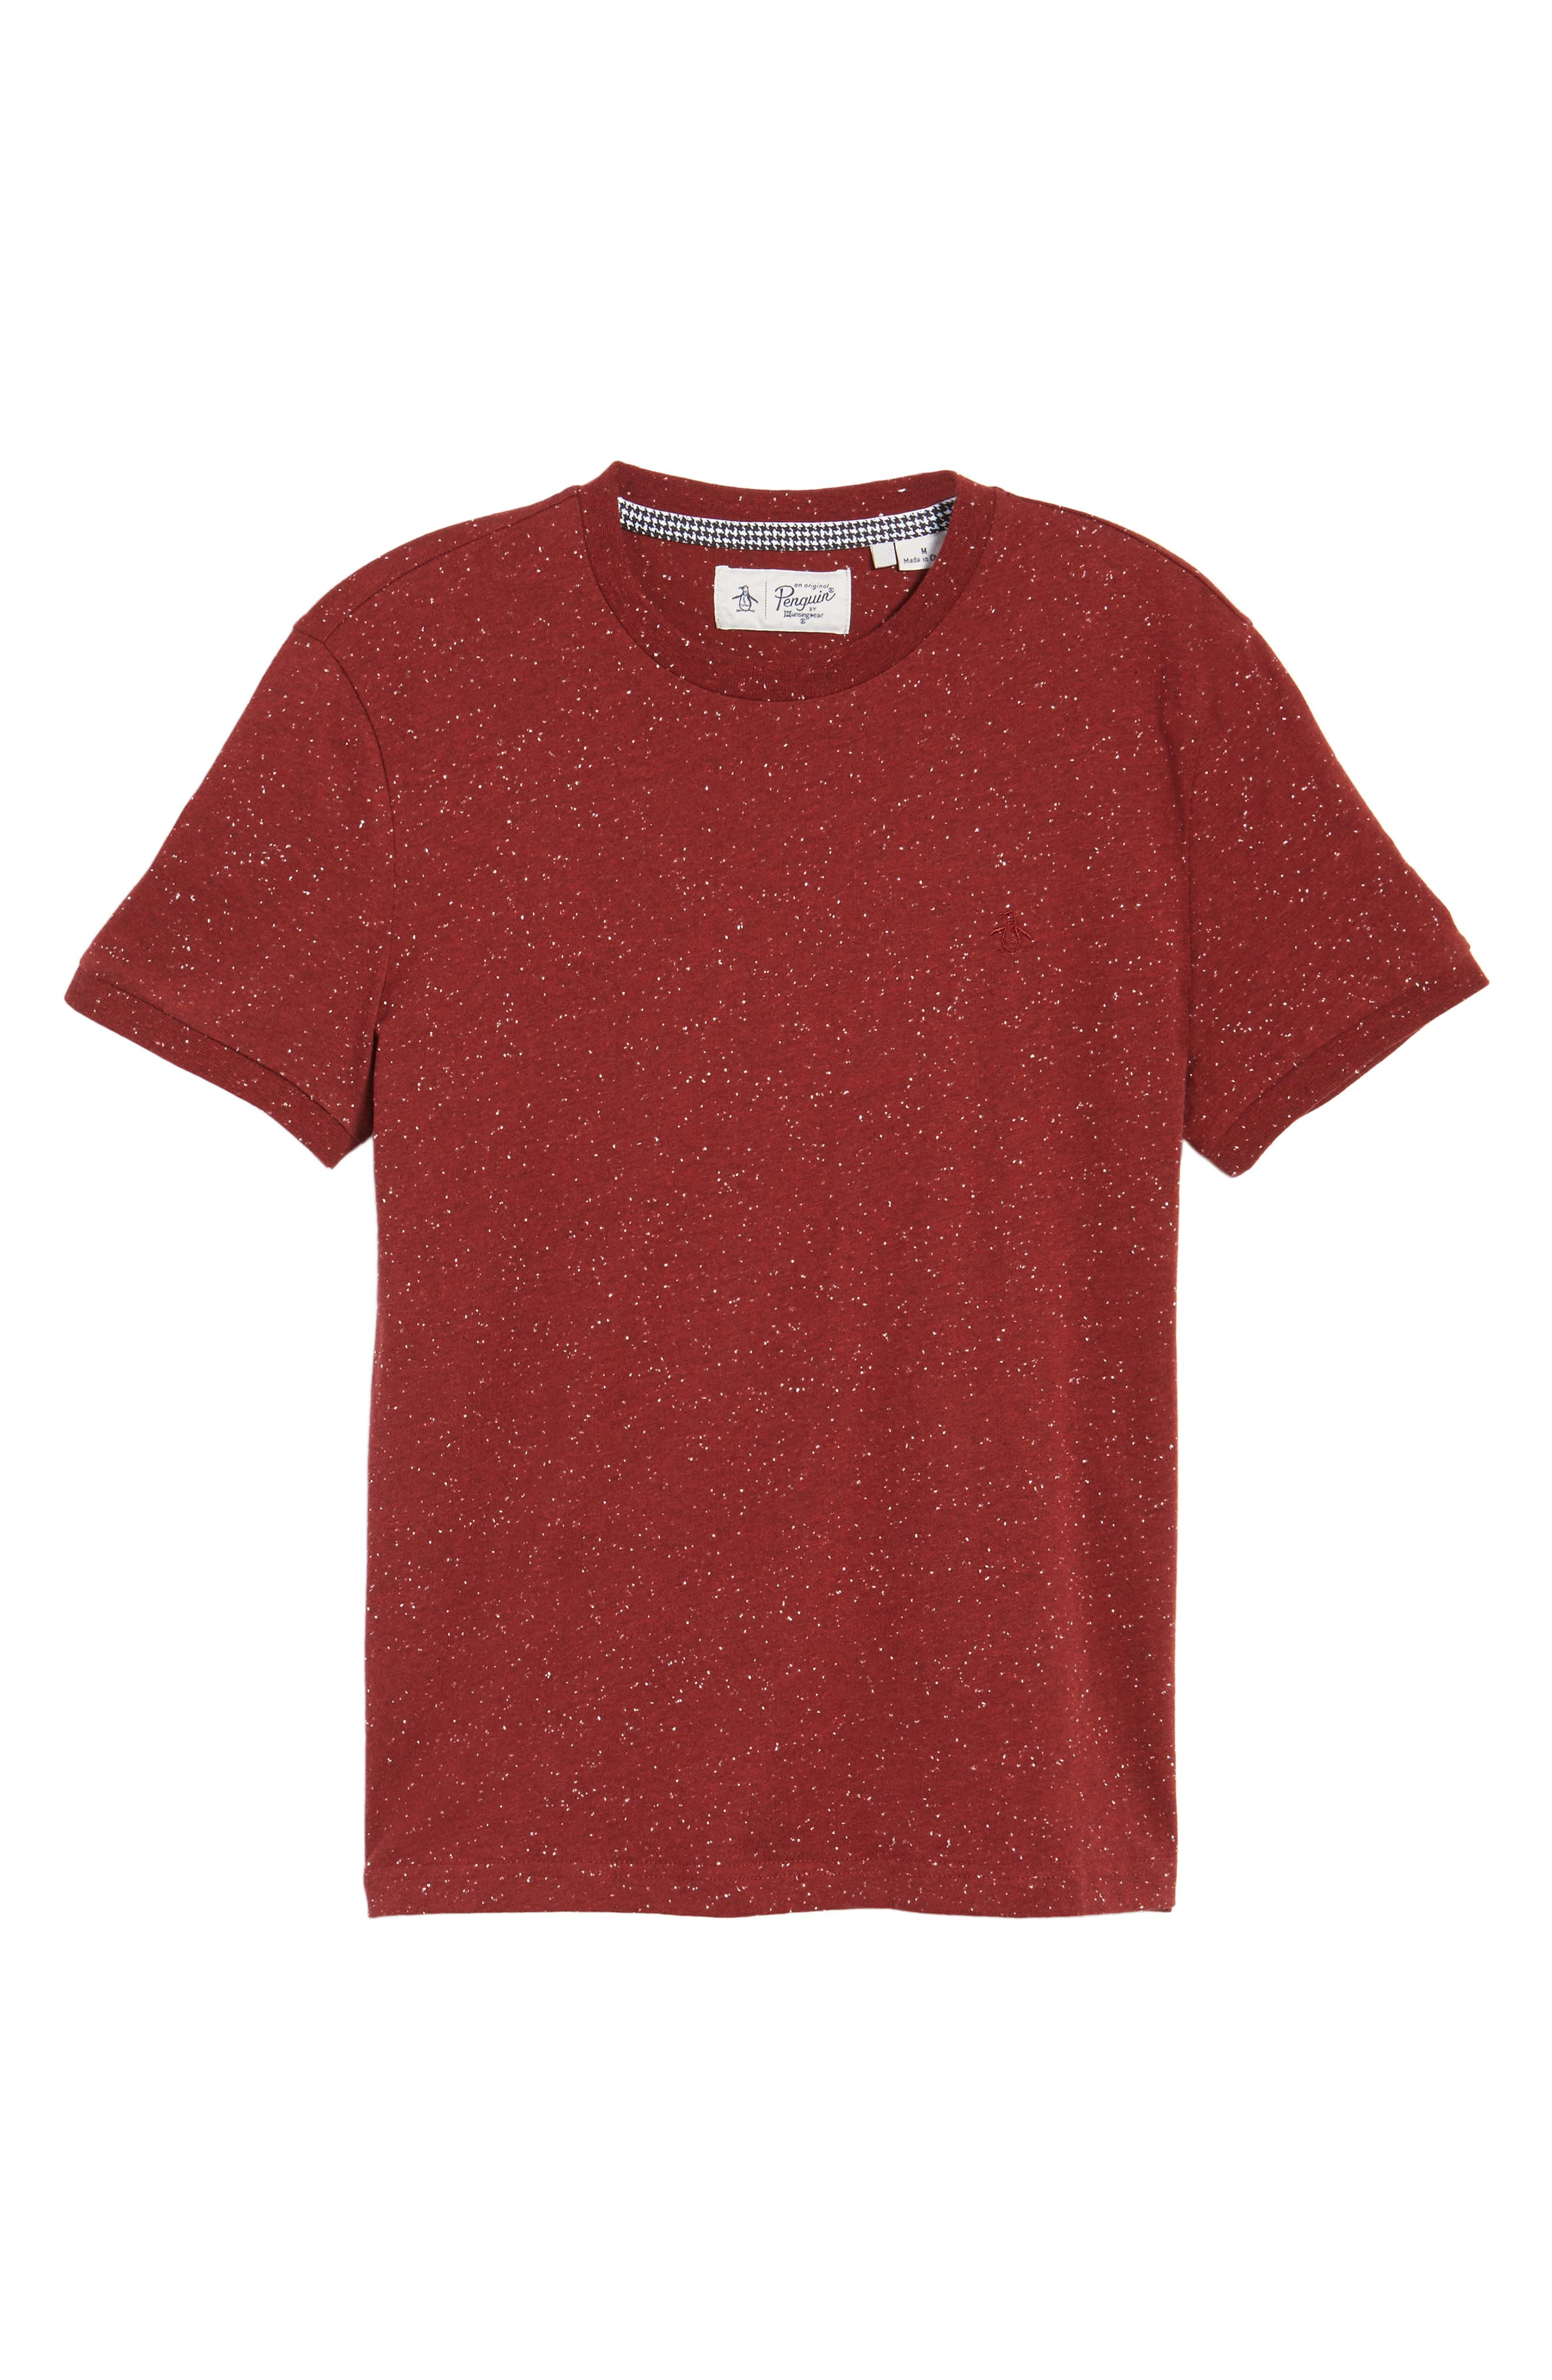 Nep Speckled T-Shirt,                             Alternate thumbnail 10, color,